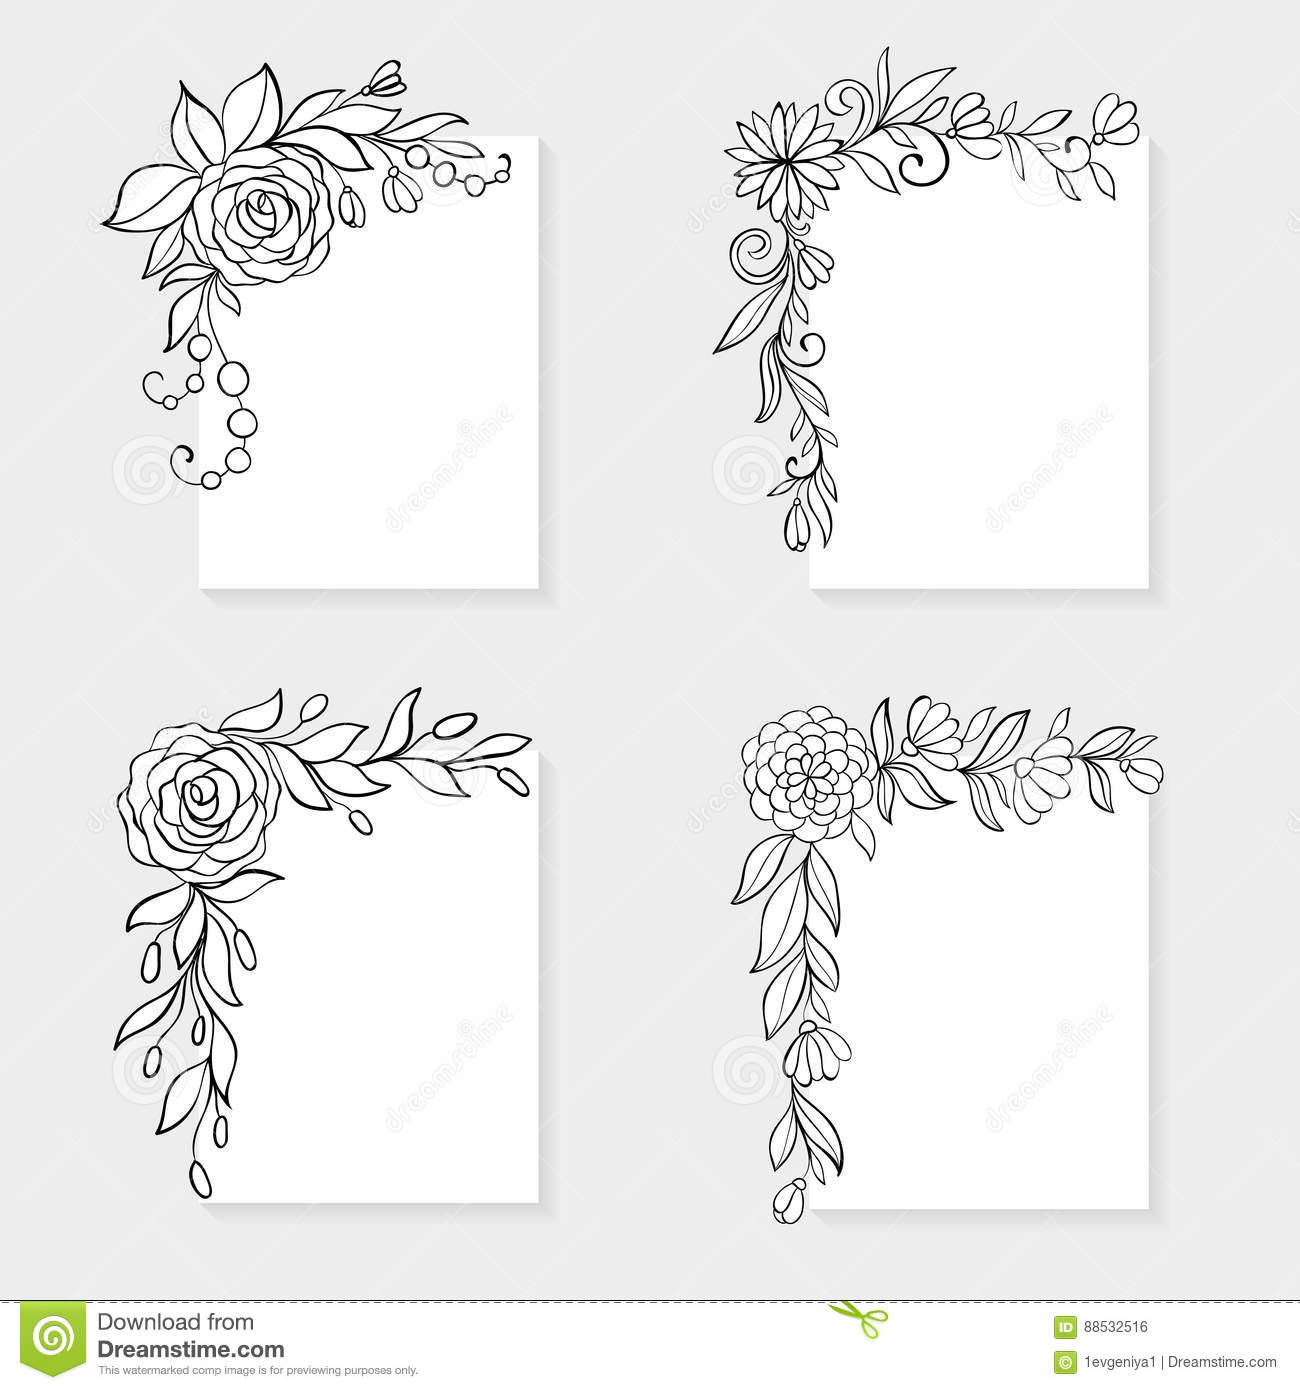 Set of black and white hand drawn corner floral borders